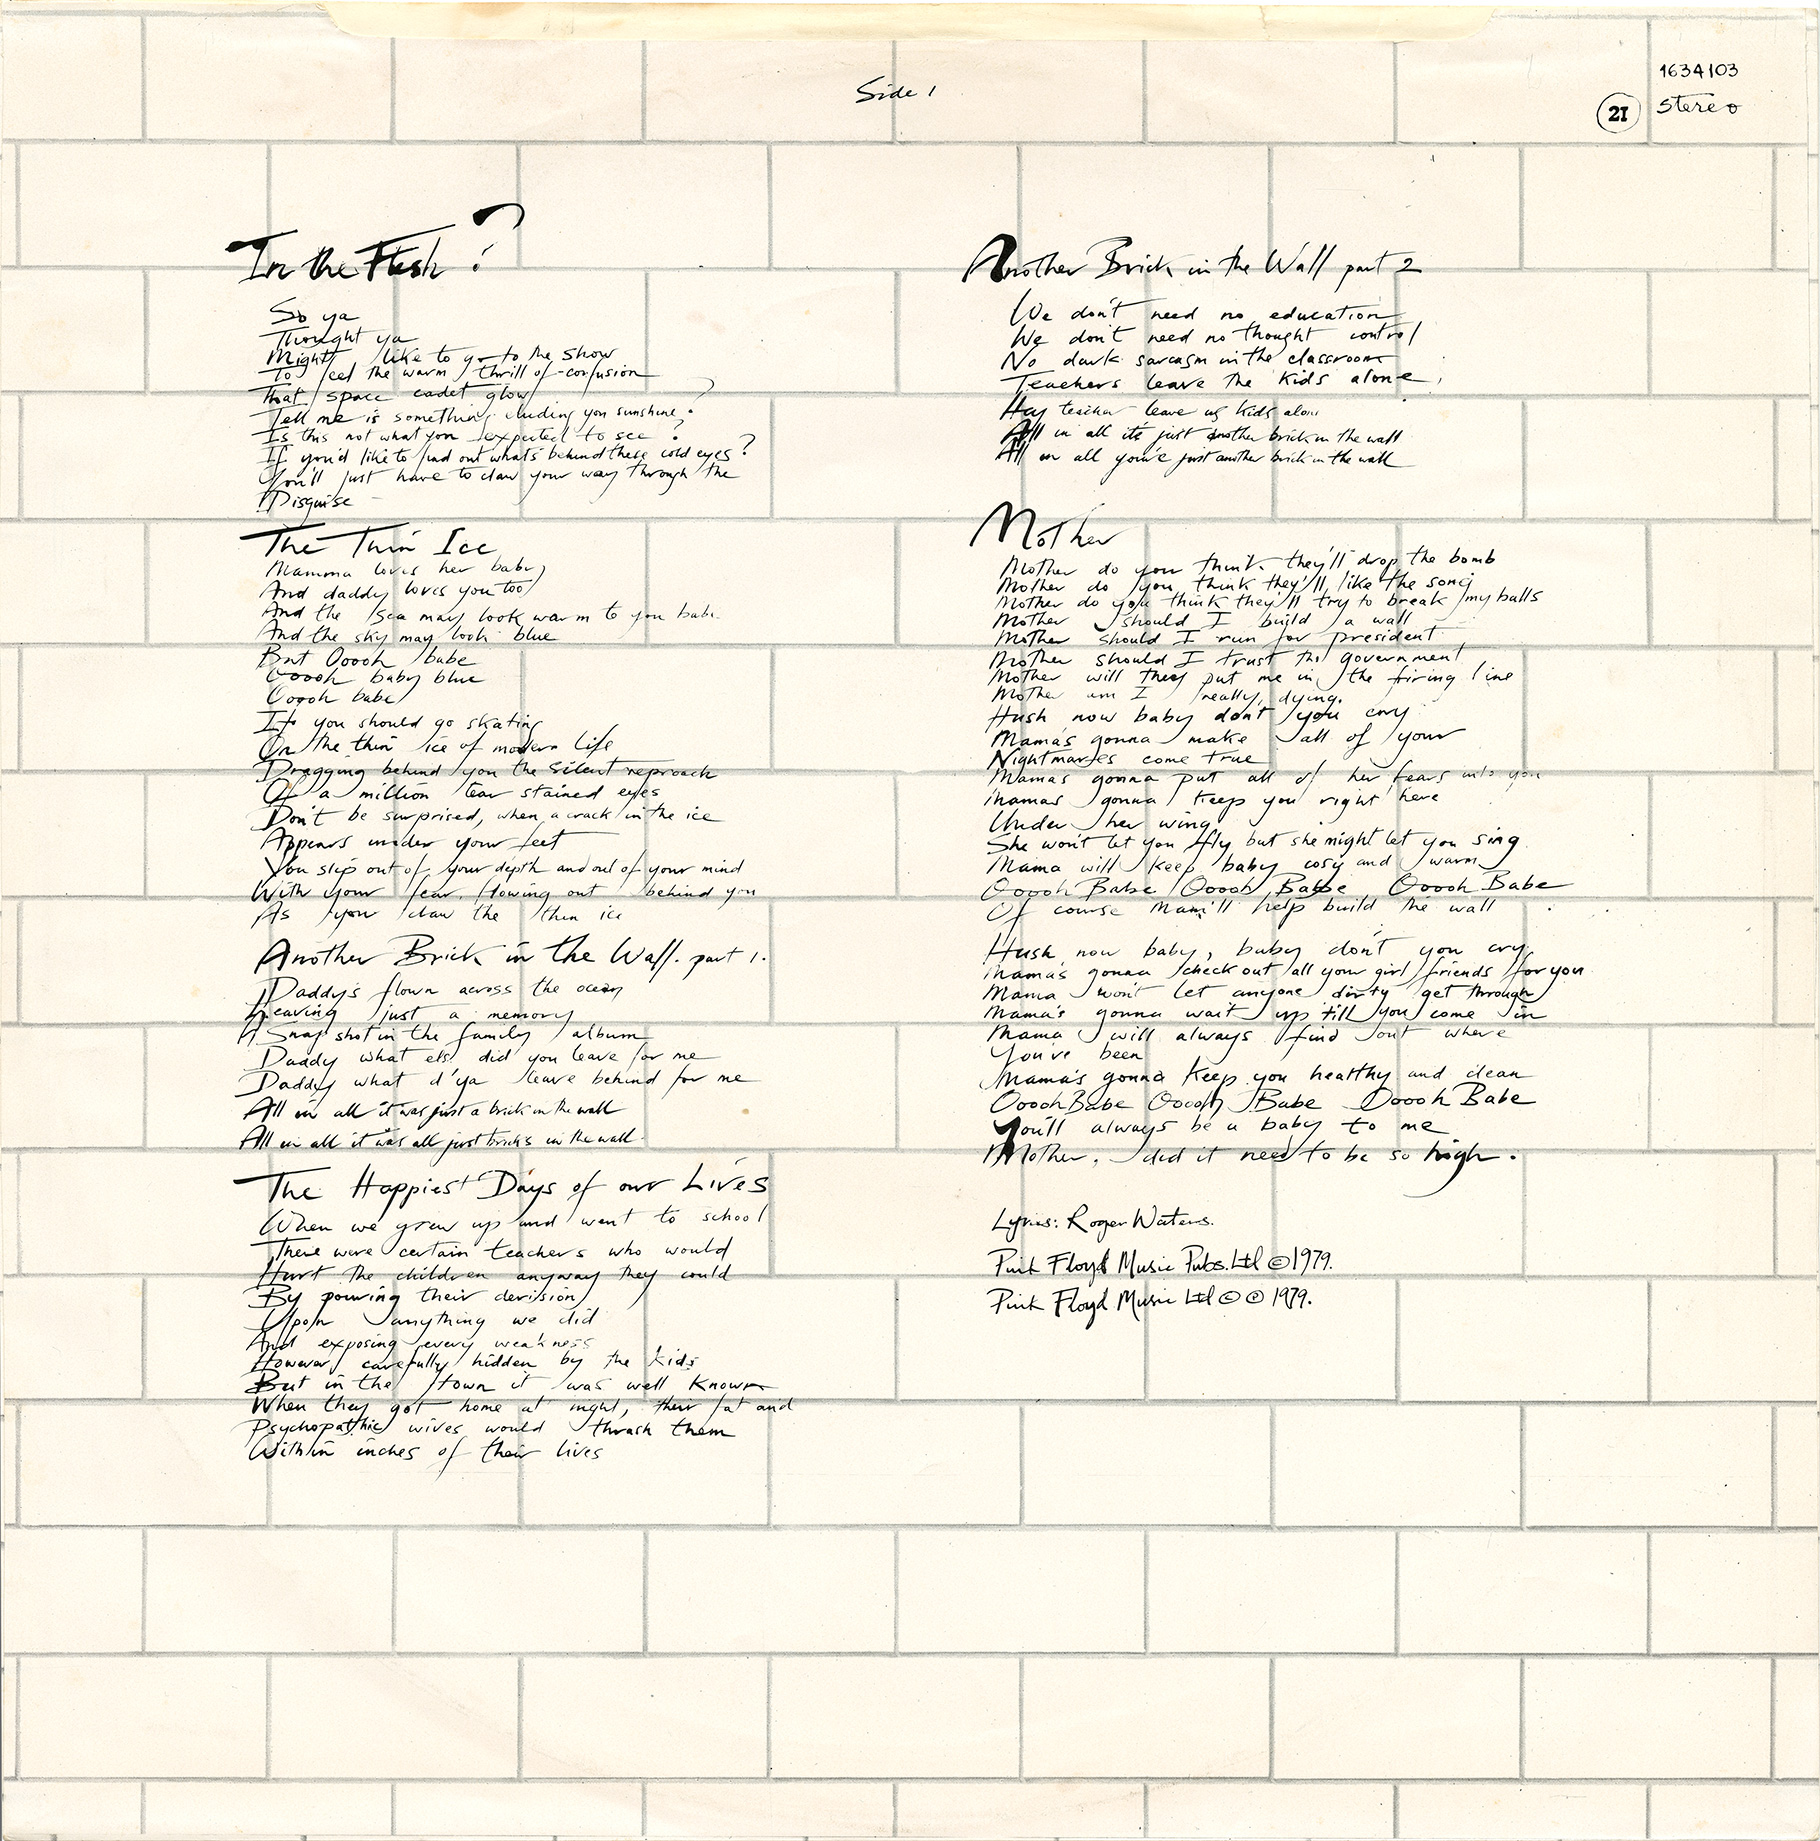 pink floyd archives portuguese pink floyd lp discography labels wall picture labels text around the top edge of the label starts at 9 o clock and